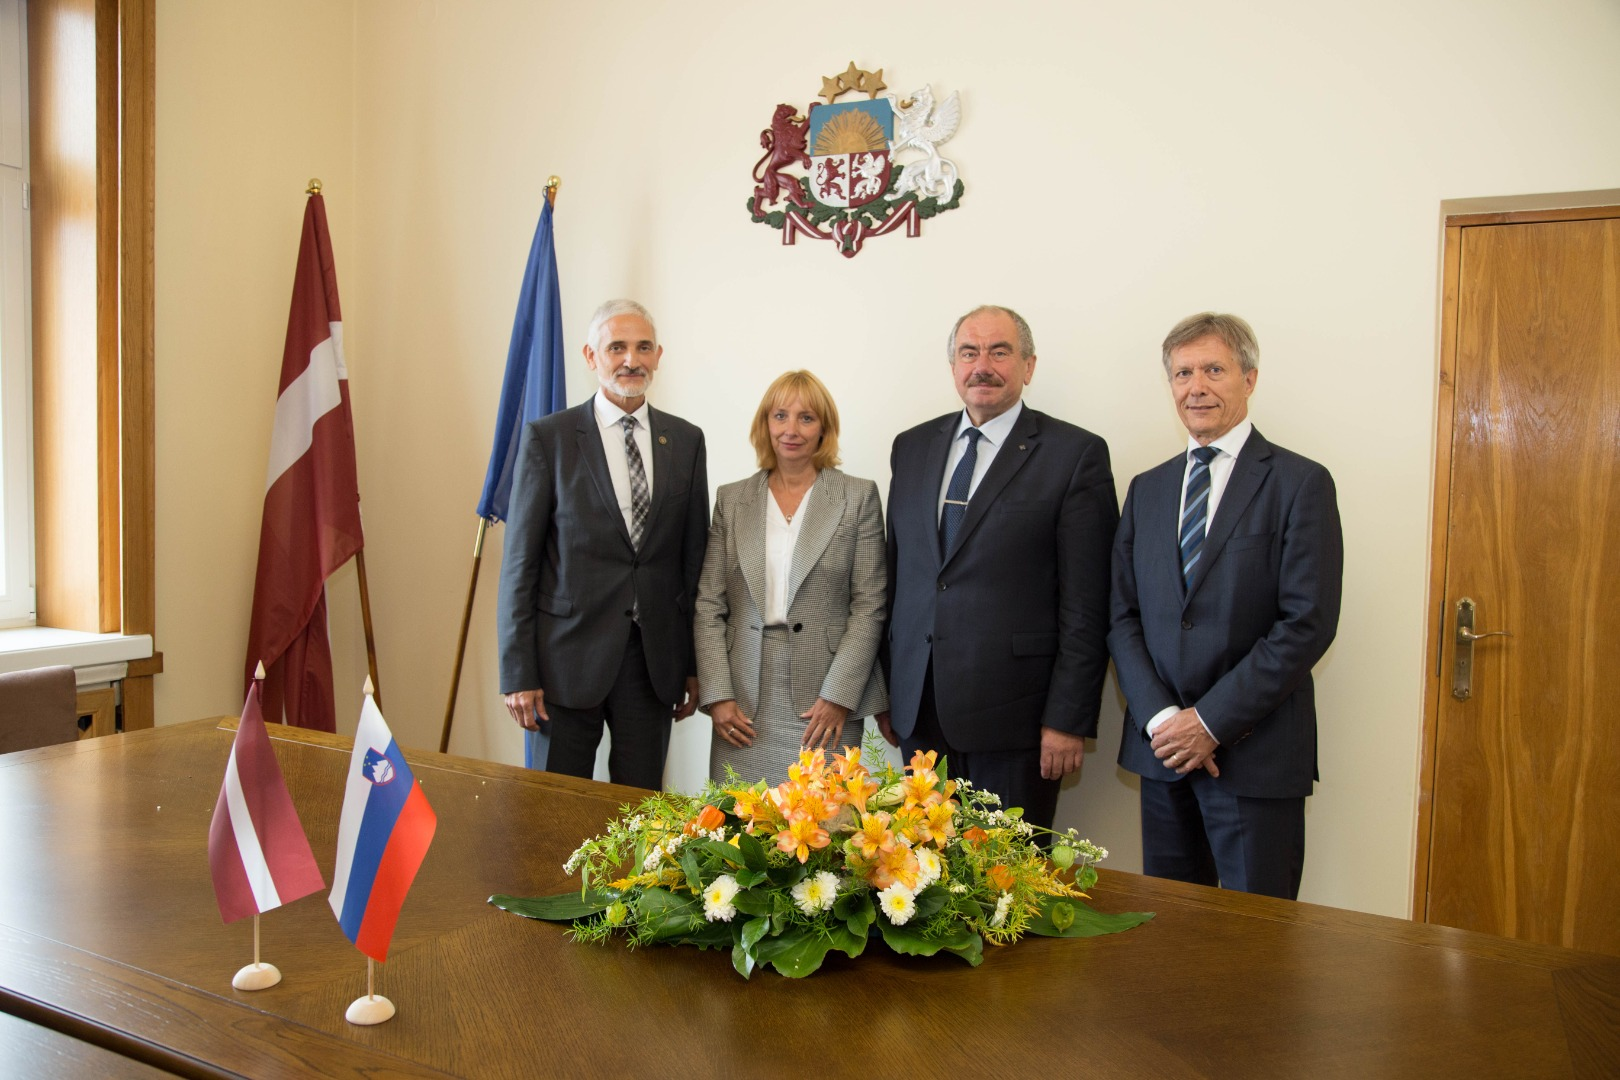 19.09.2019. The Supreme Court of Slovenia, headed by President Damijan Florjančič visited the Supreme Court of Latvia and mat with judges and legal research counsels in order to exchange information and viewpoints on the procedural regulation of cassation courts in both countries, on the organization of court work, topical problems and solutions. In the photo – Chief Justice of the Supreme Court of Latvia together with guests.